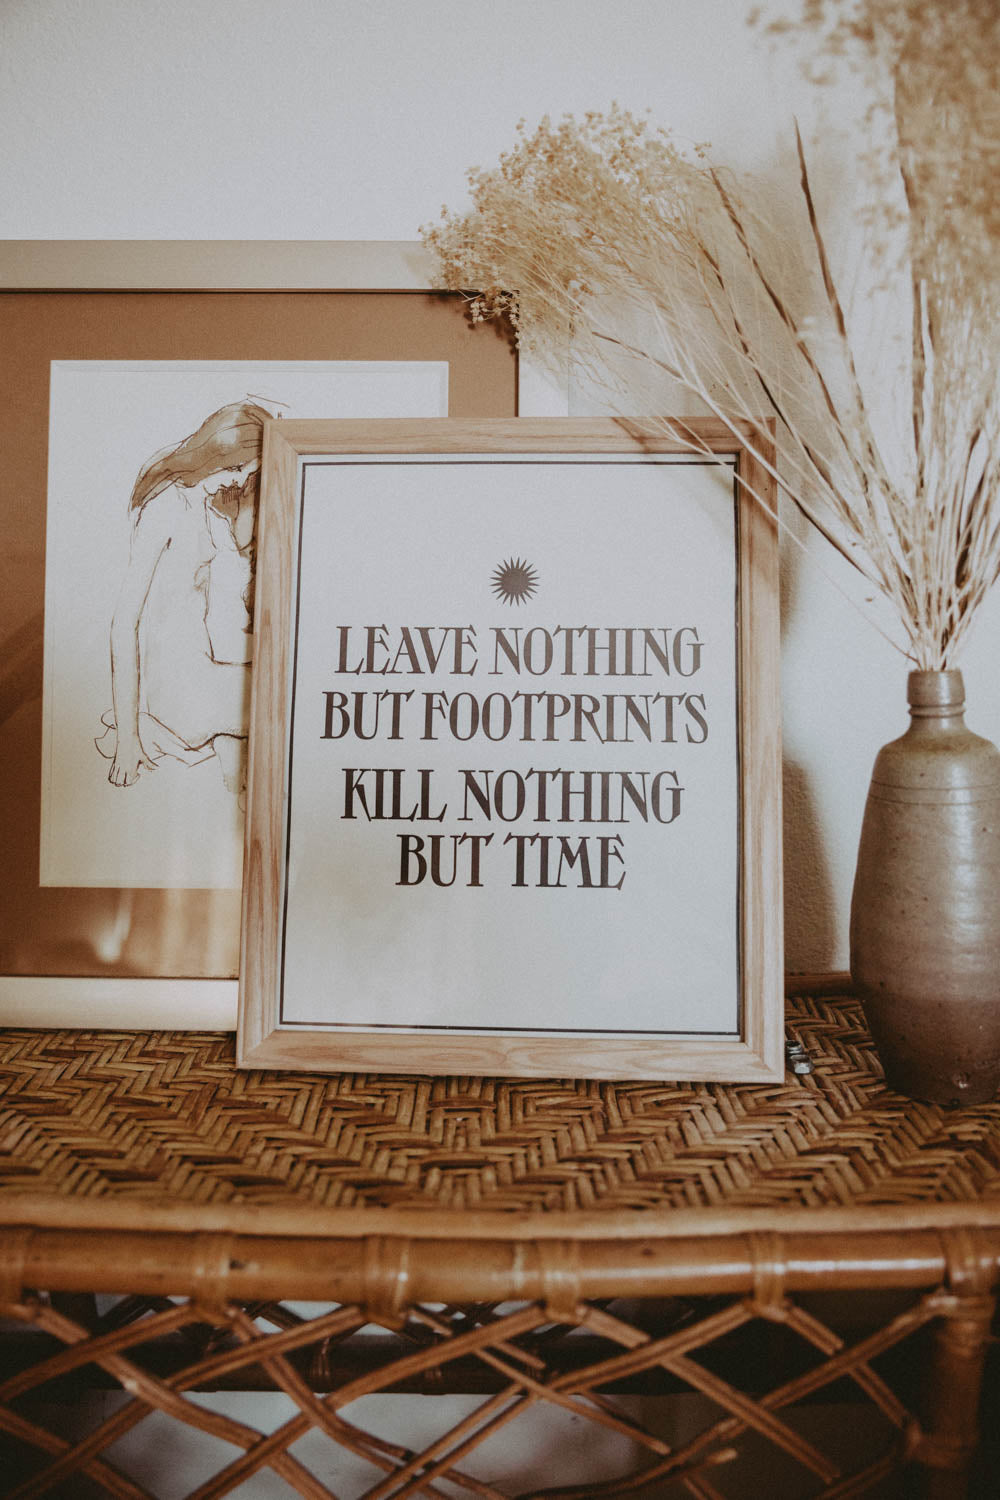 Letterpress: Leave Nothing But Footprints Kill Nothing But Time